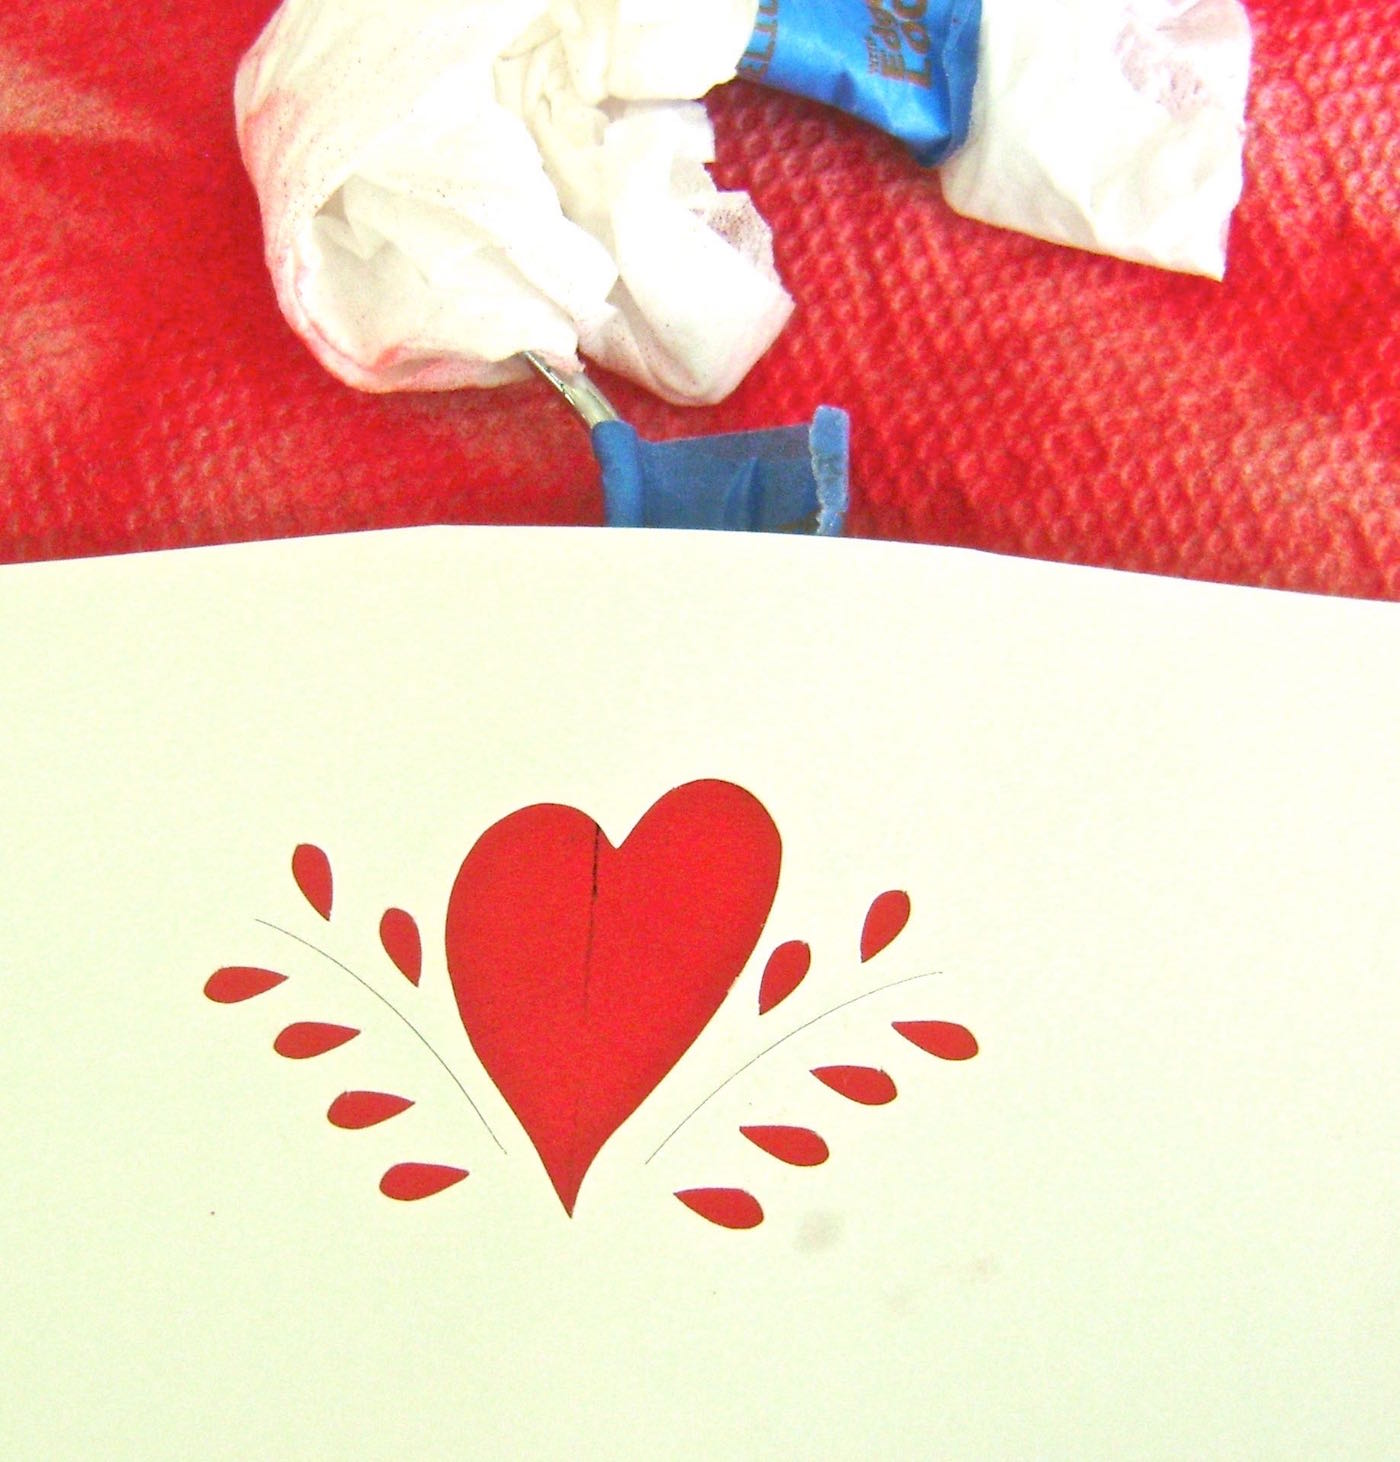 step 5 - Stick the heart stencil on the center of the hanger.  Airbrush it with white paint.